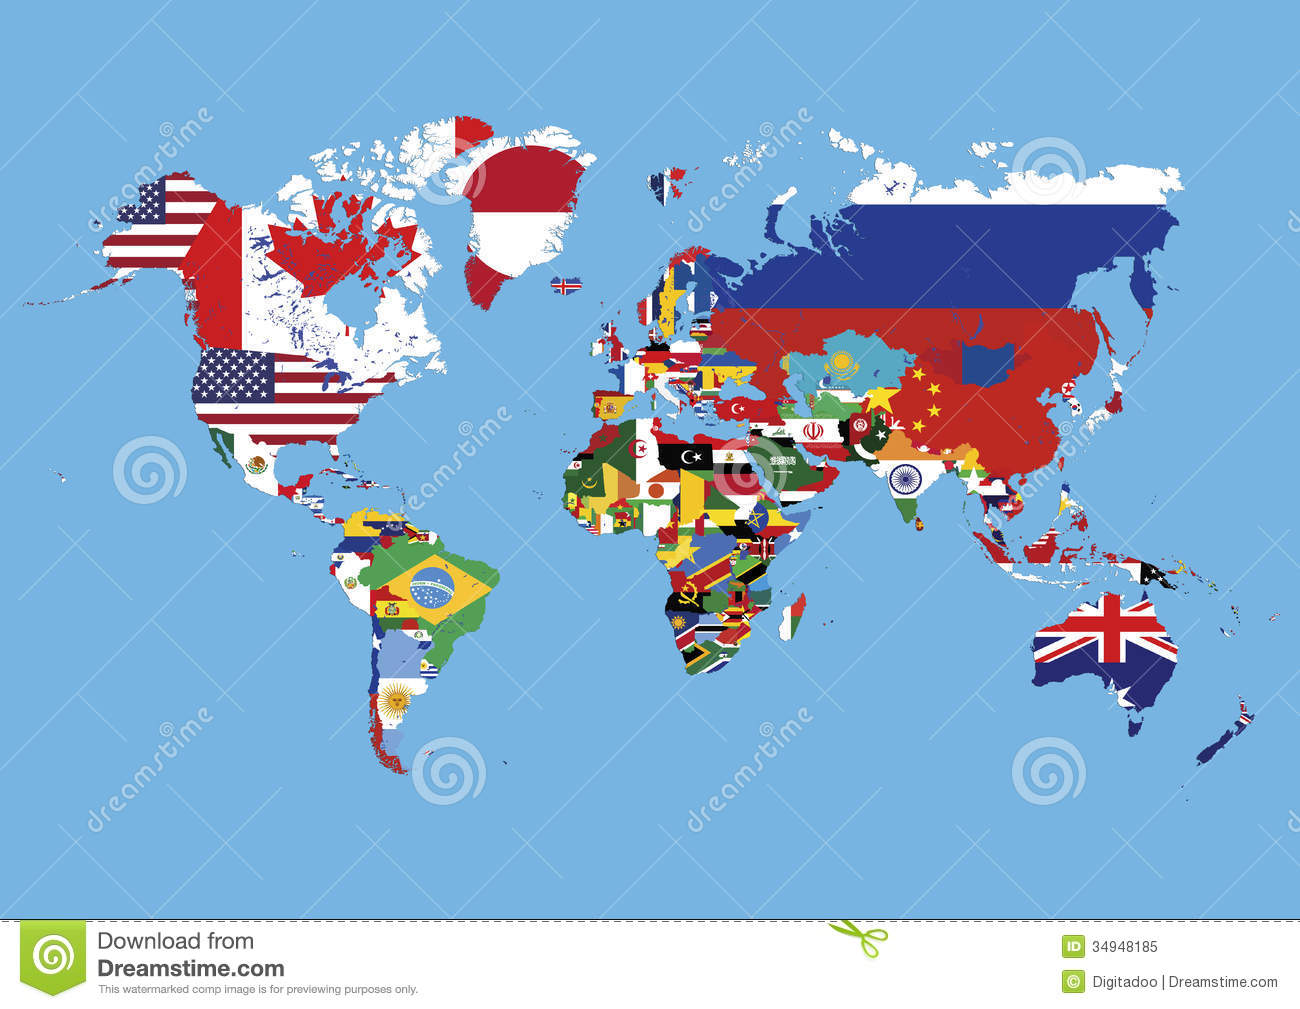 World map colored in countries flags no names stock illustration world map colored in countries flags no names gumiabroncs Image collections